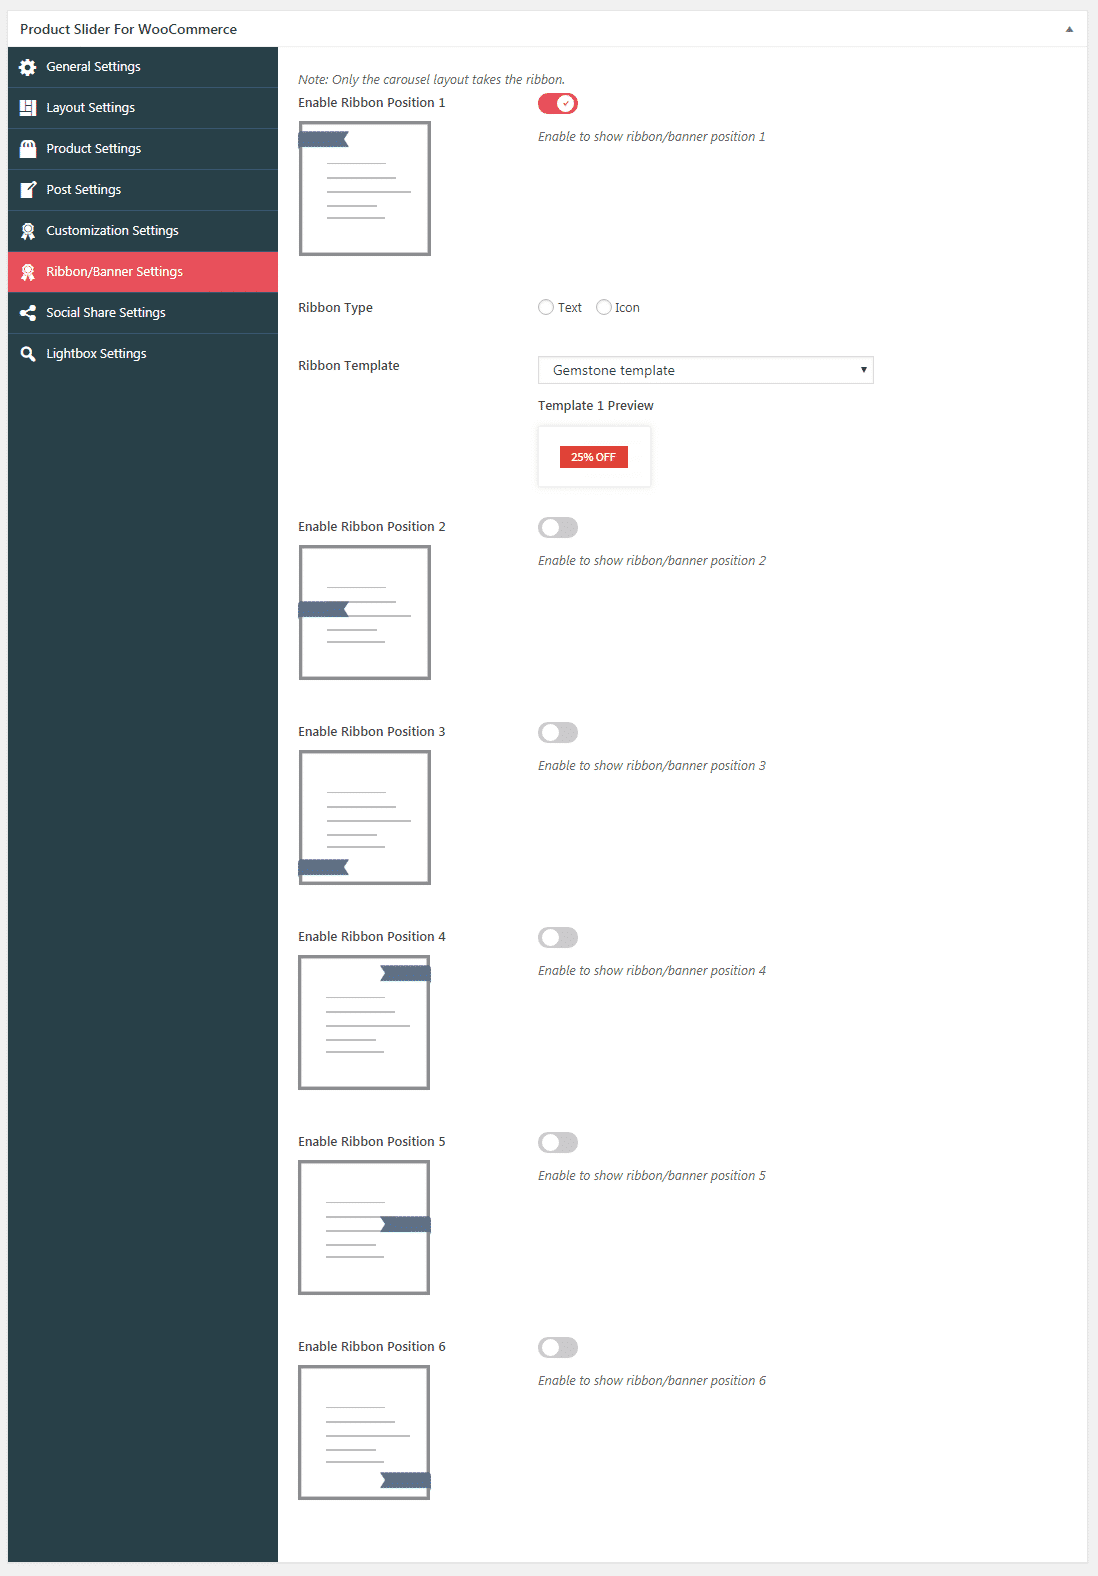 psfw ribbon settings - How to Add Beautiful WooCommerce Product Slider on your WordPress Website? (Step by Step Guide)